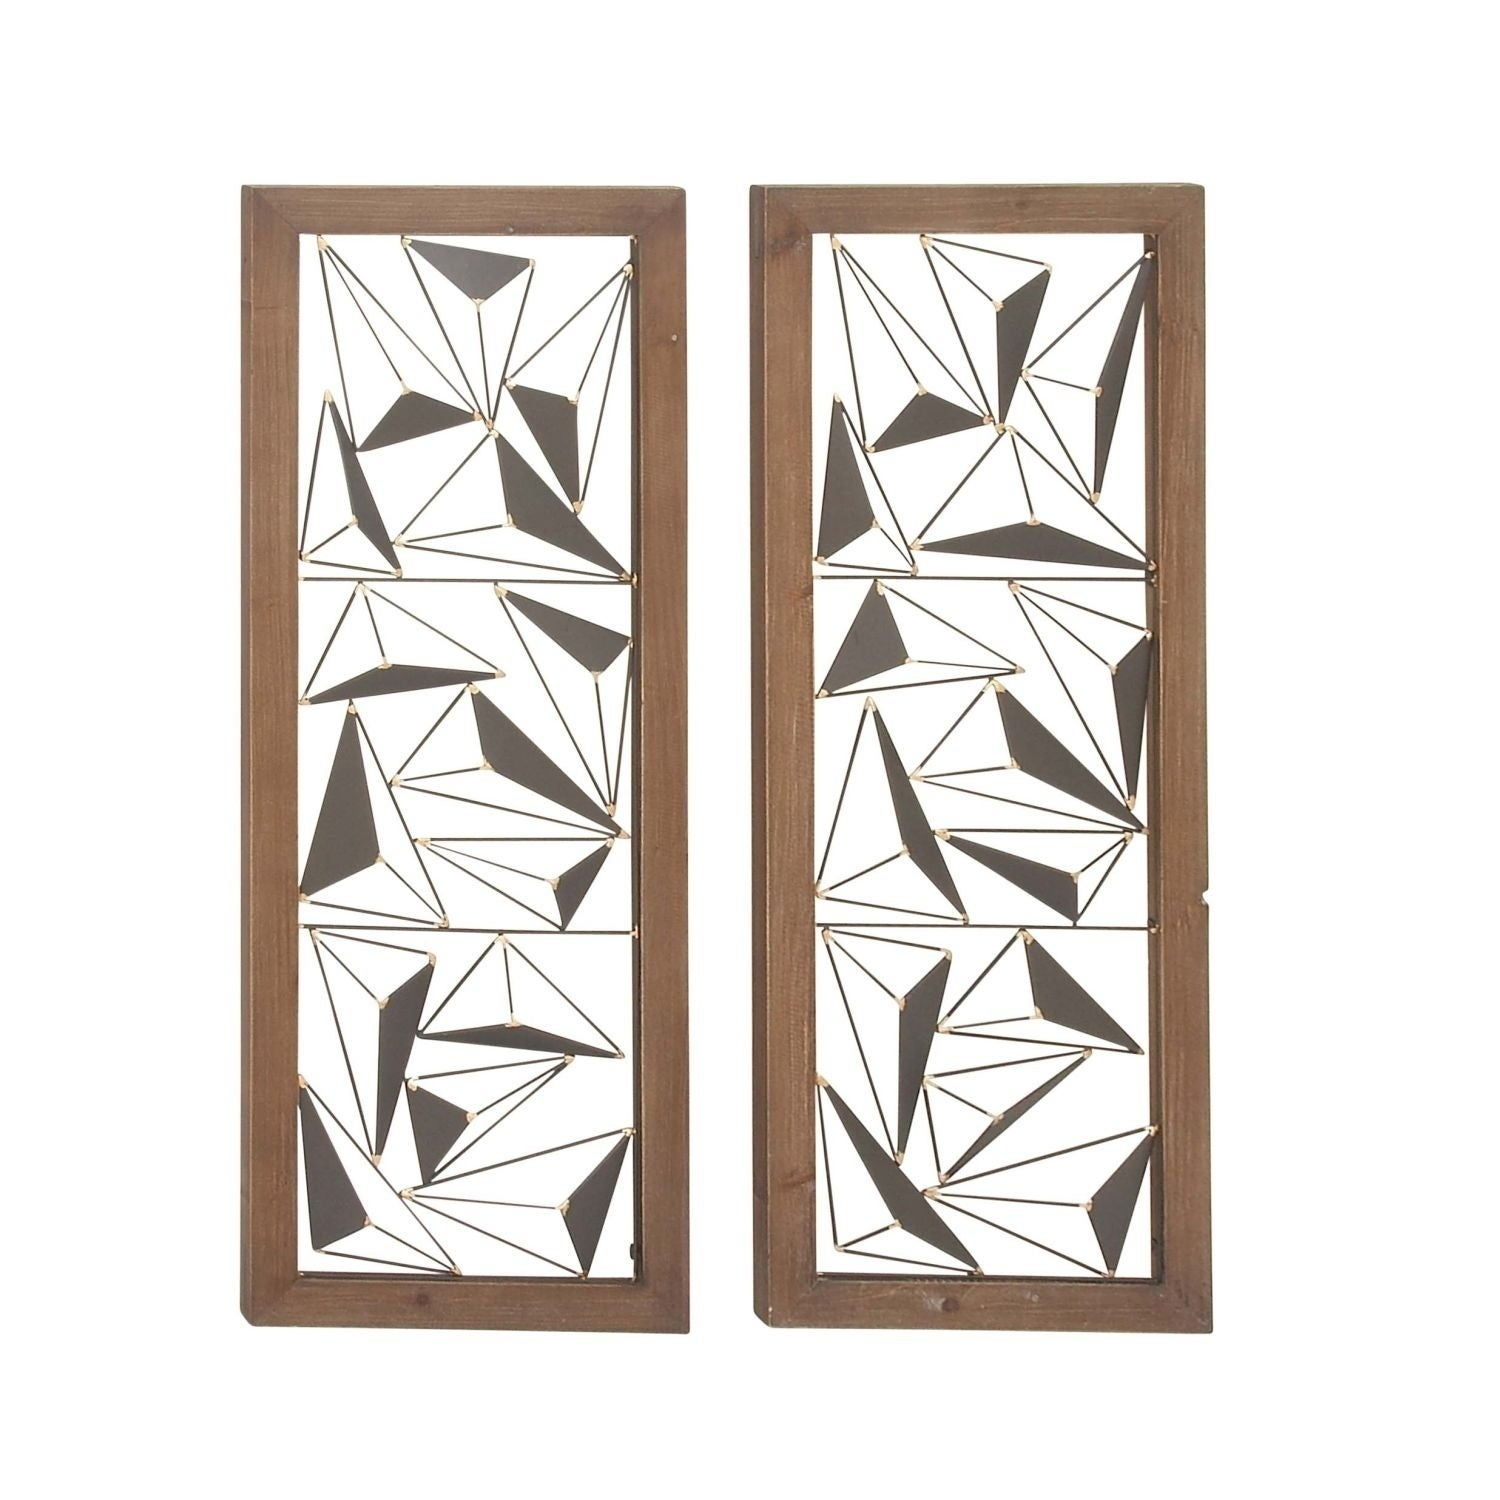 4 Piece Metal Wall Plaque Decor Sets Throughout Most Up To Date Shop Carson Carrington Orivesi 2 Piece Wood Metal Wall Decor Set (Gallery 18 of 20)